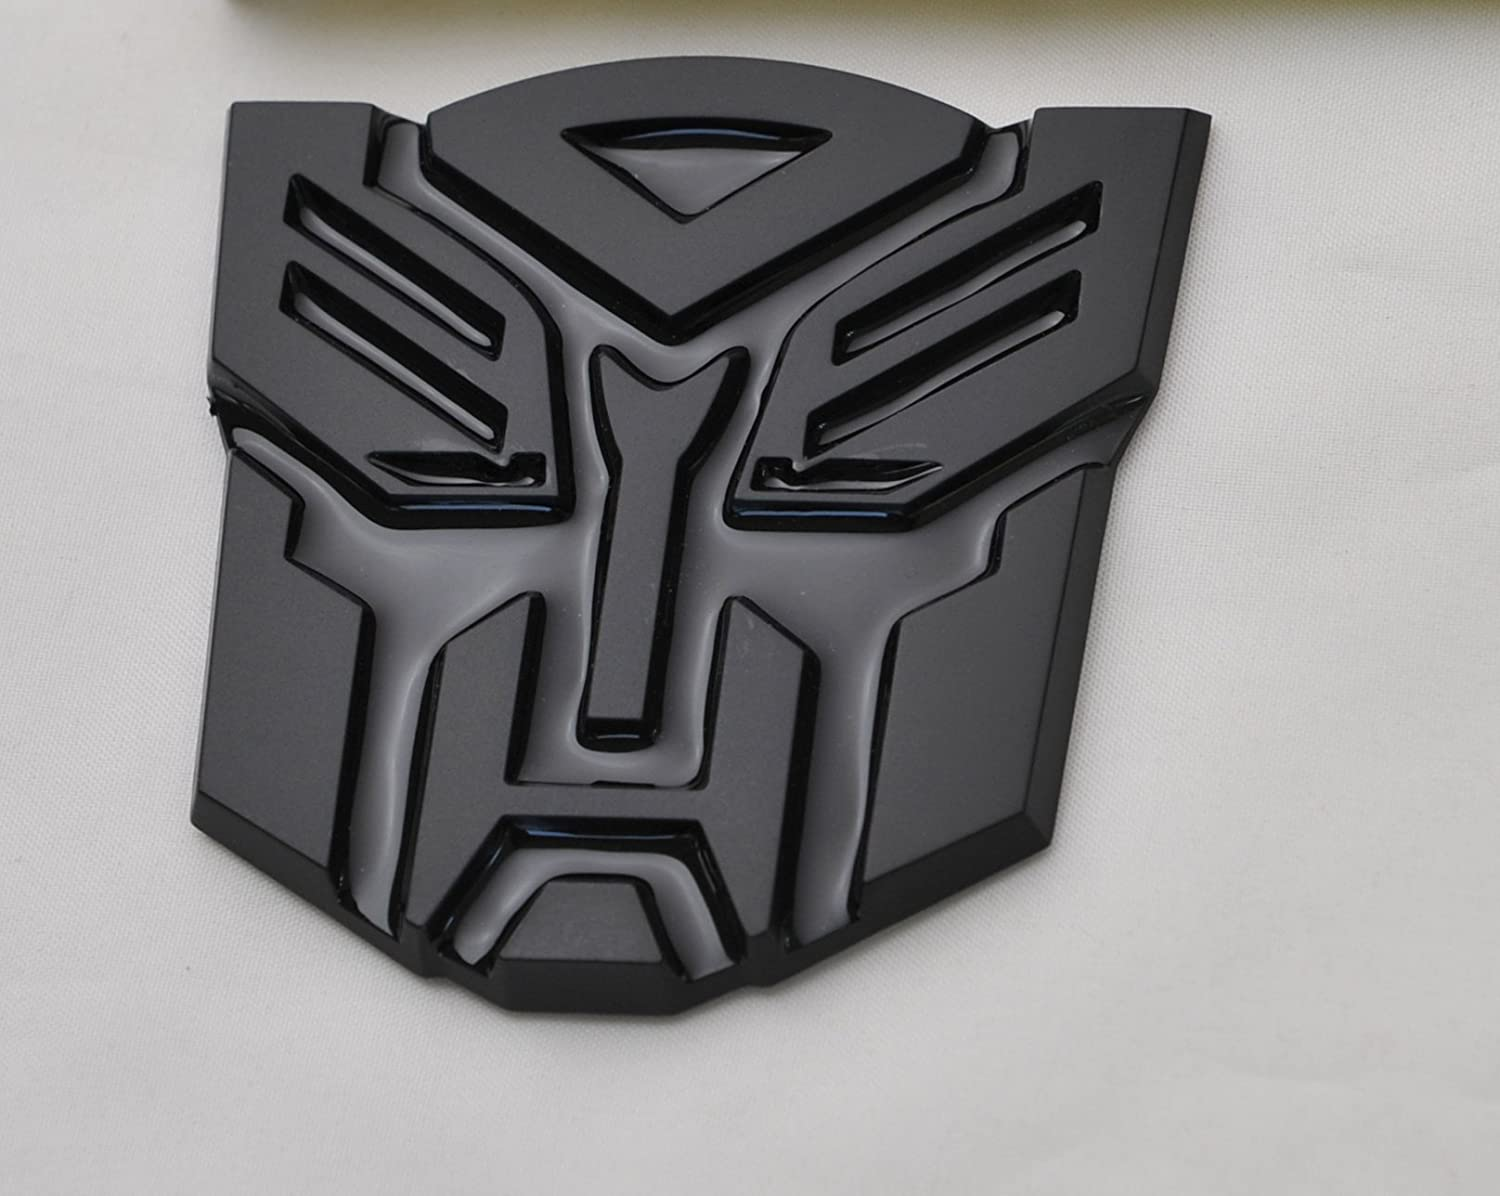 Transformers Autobot Car Black Badge Emblem 3D Logo Small The Masonic Exchange TME-4081